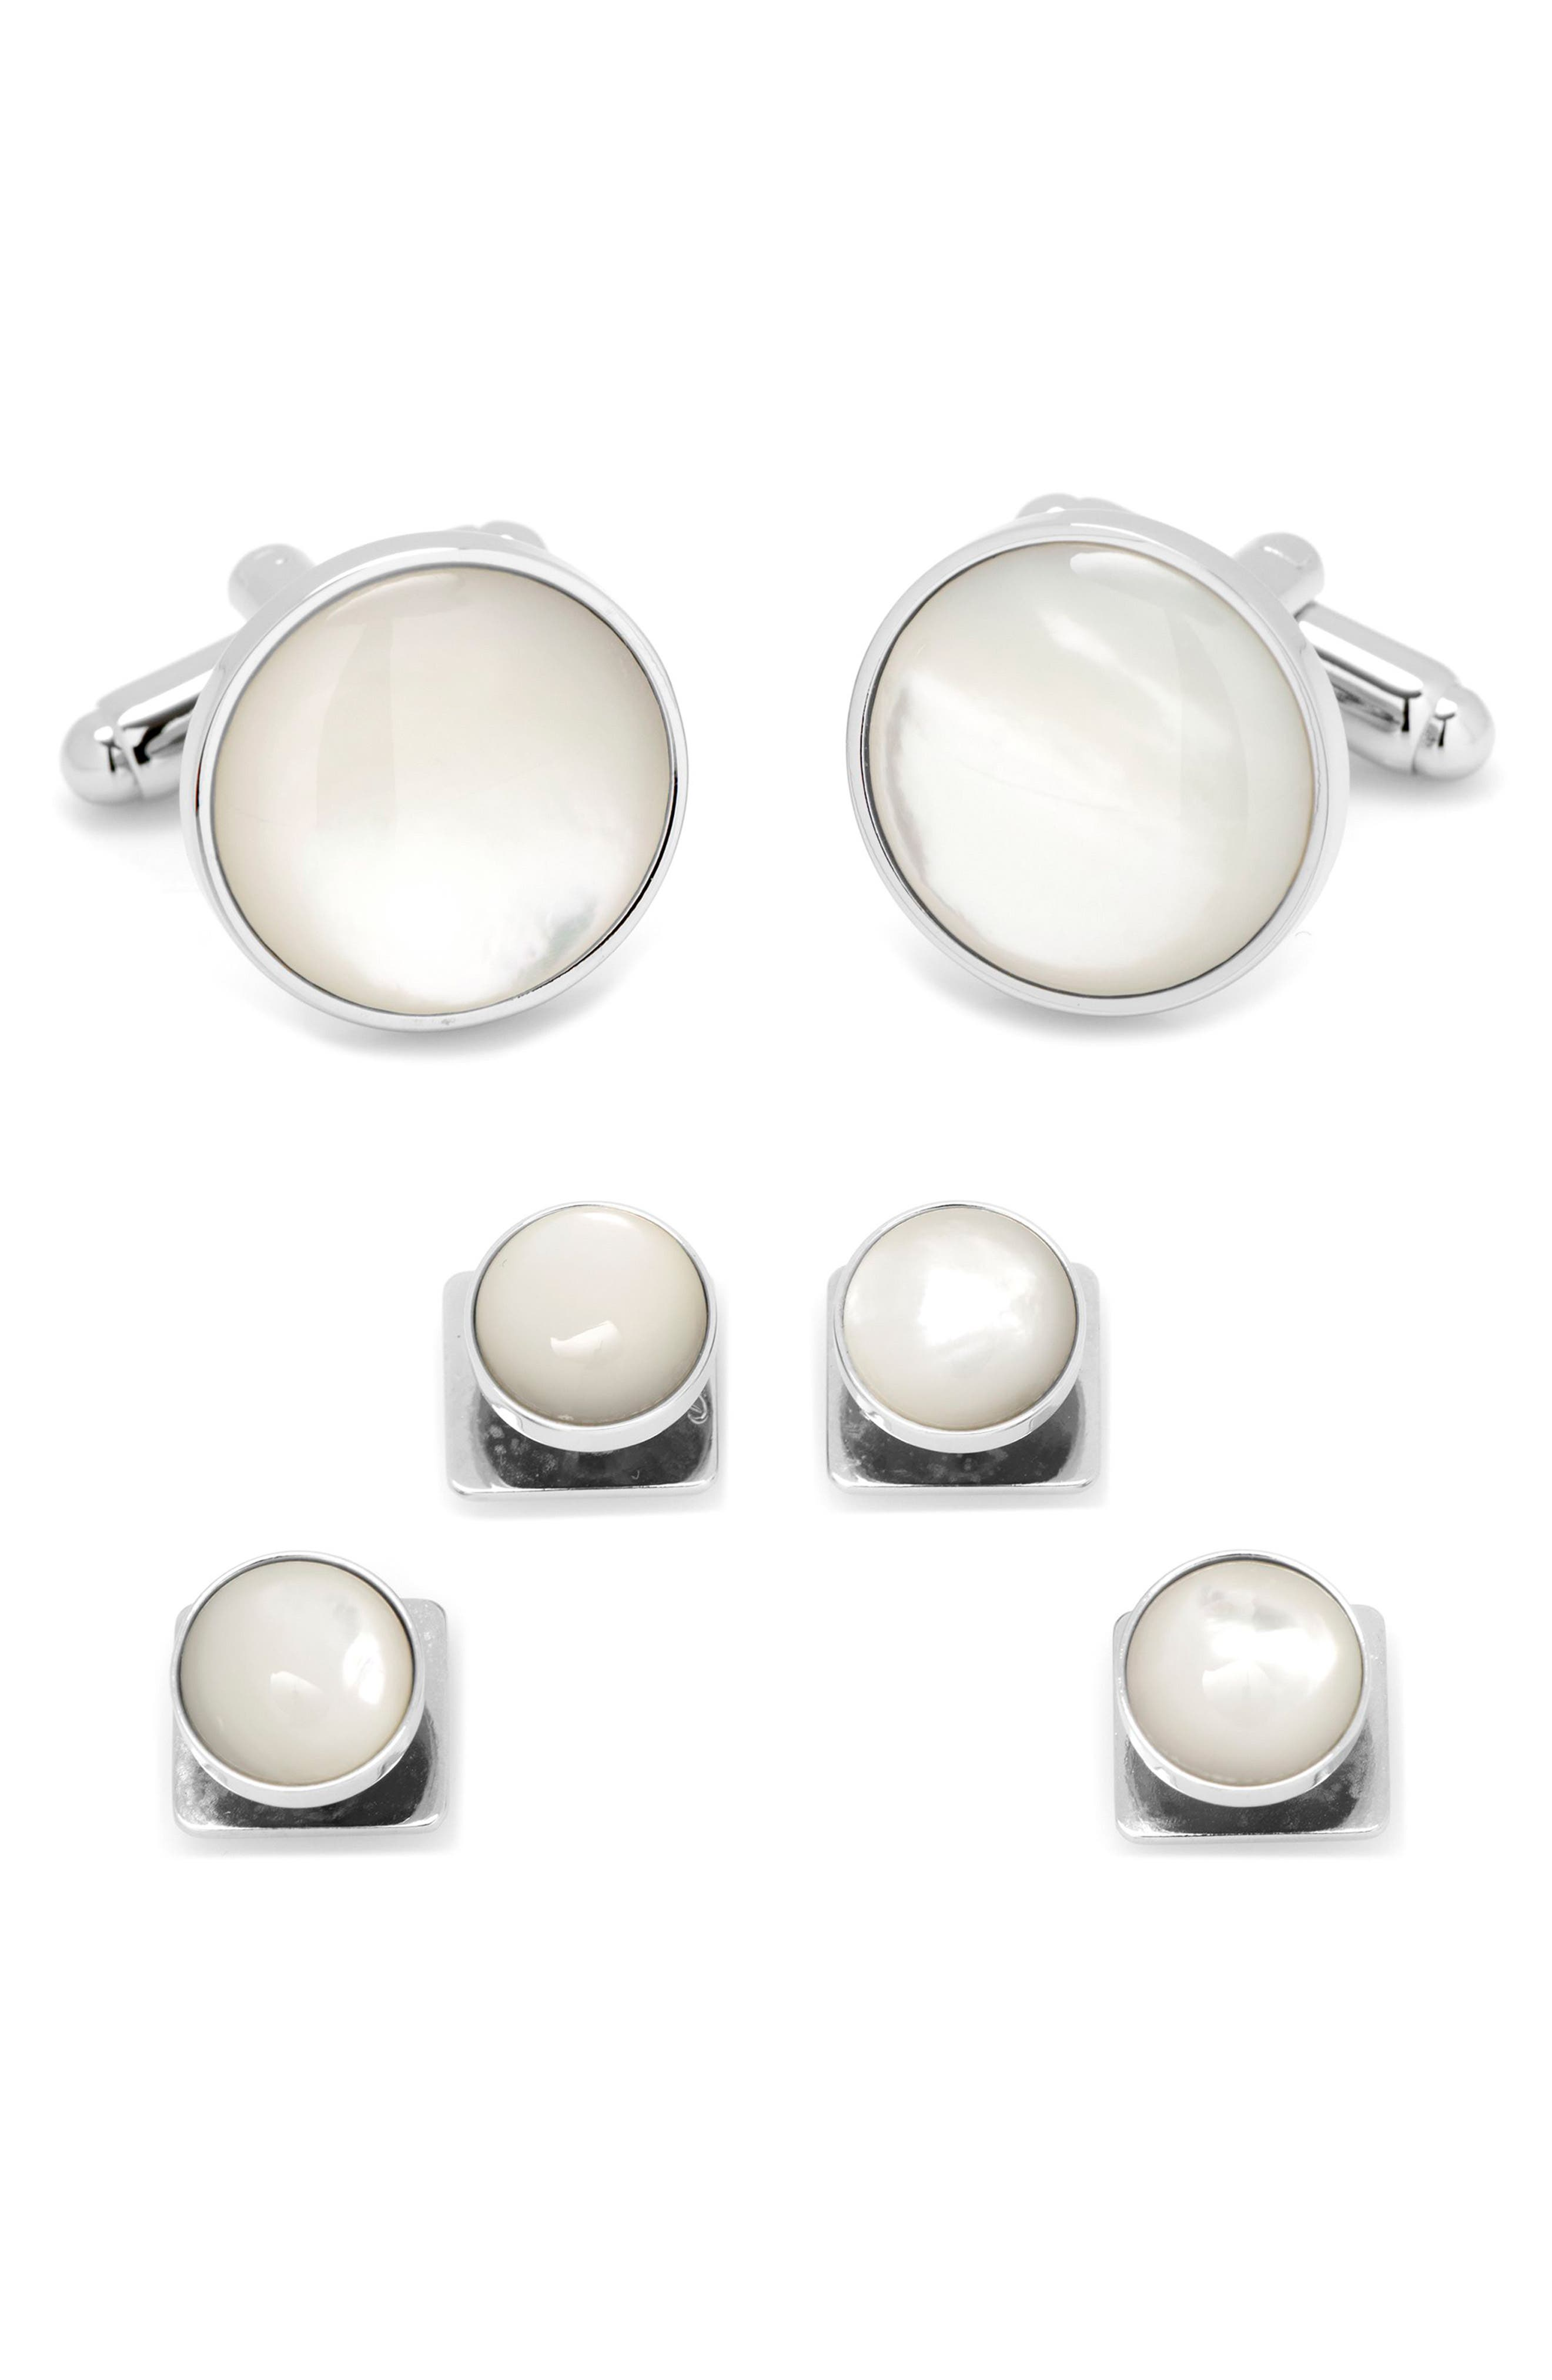 Mother of Pearl Cuff Link & Stud Set,                             Main thumbnail 1, color,                             Silver/ White